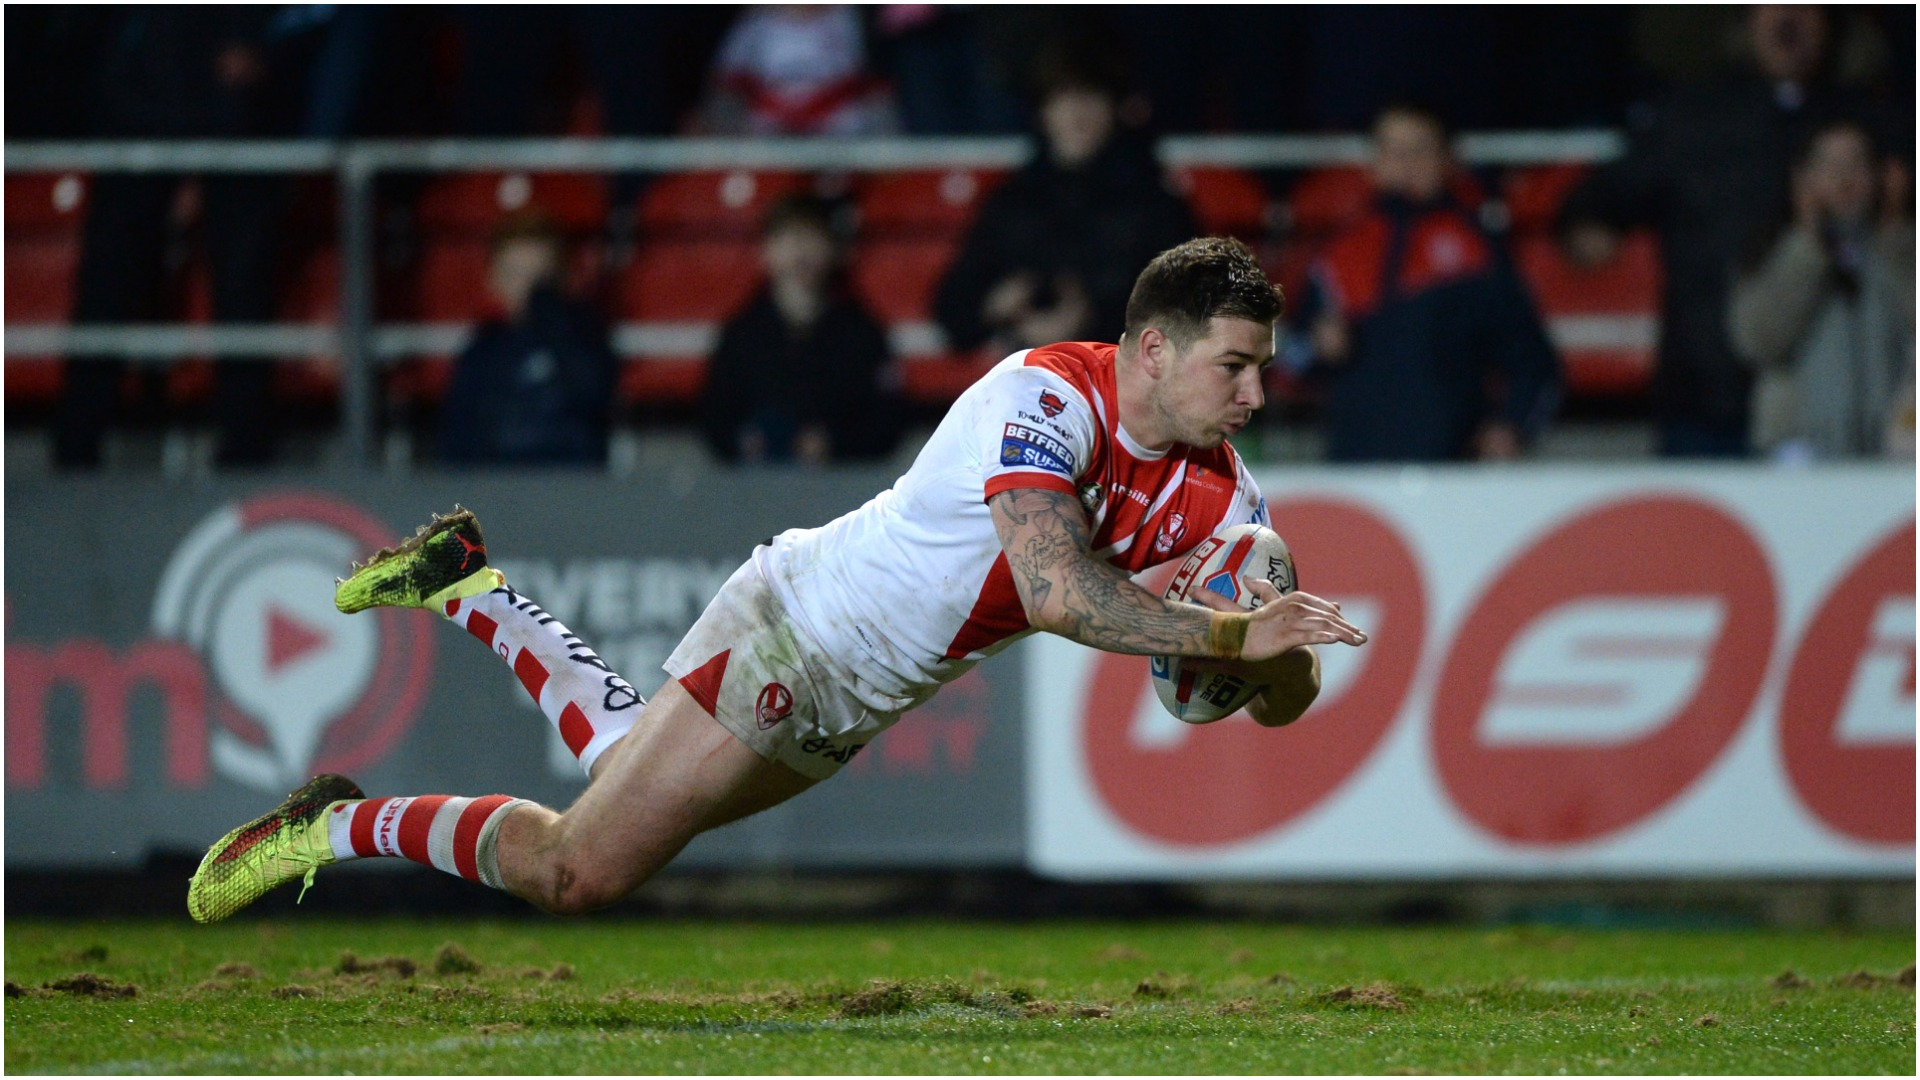 An entirely one-sided second half saw St Helens make it six wins from six in Super League this season.